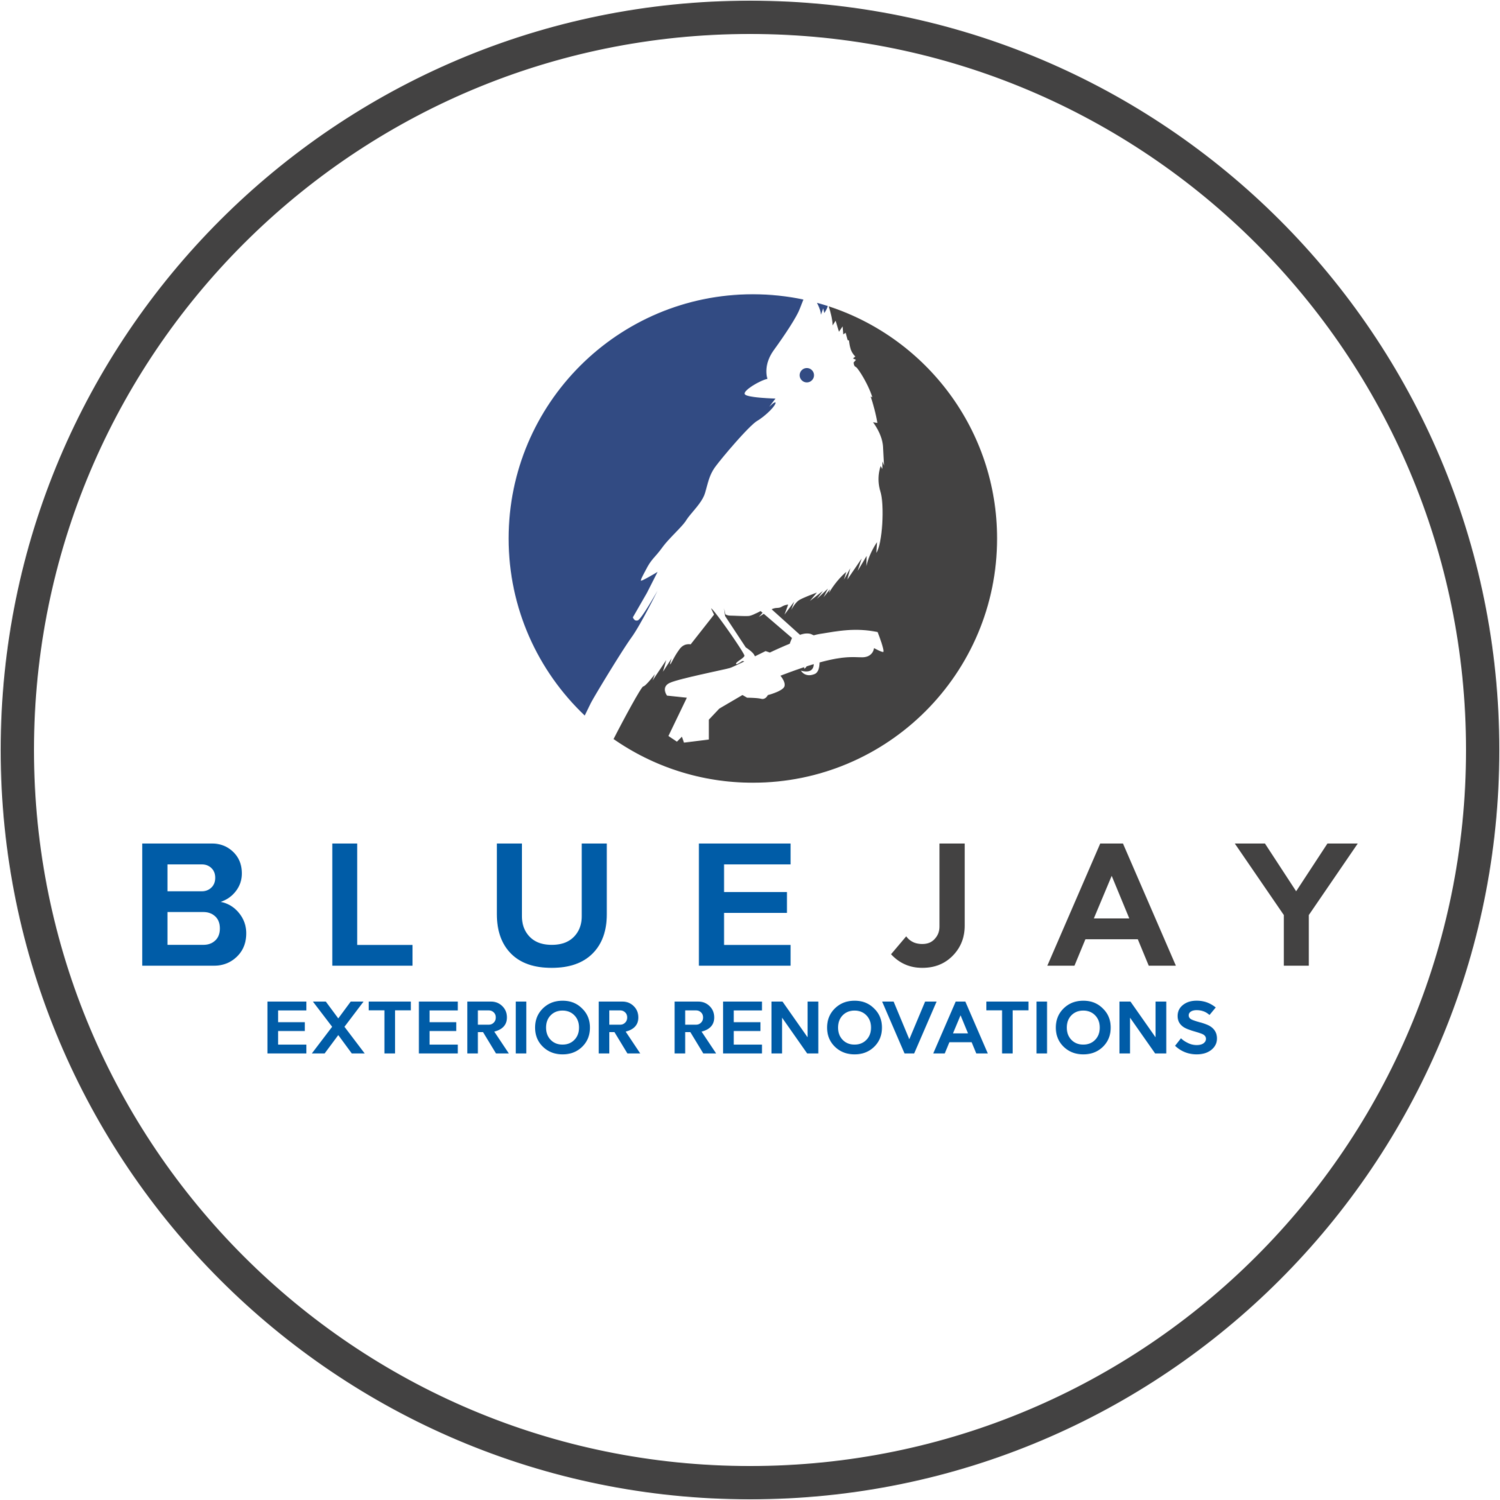 Blue Jay Exterior Renovations